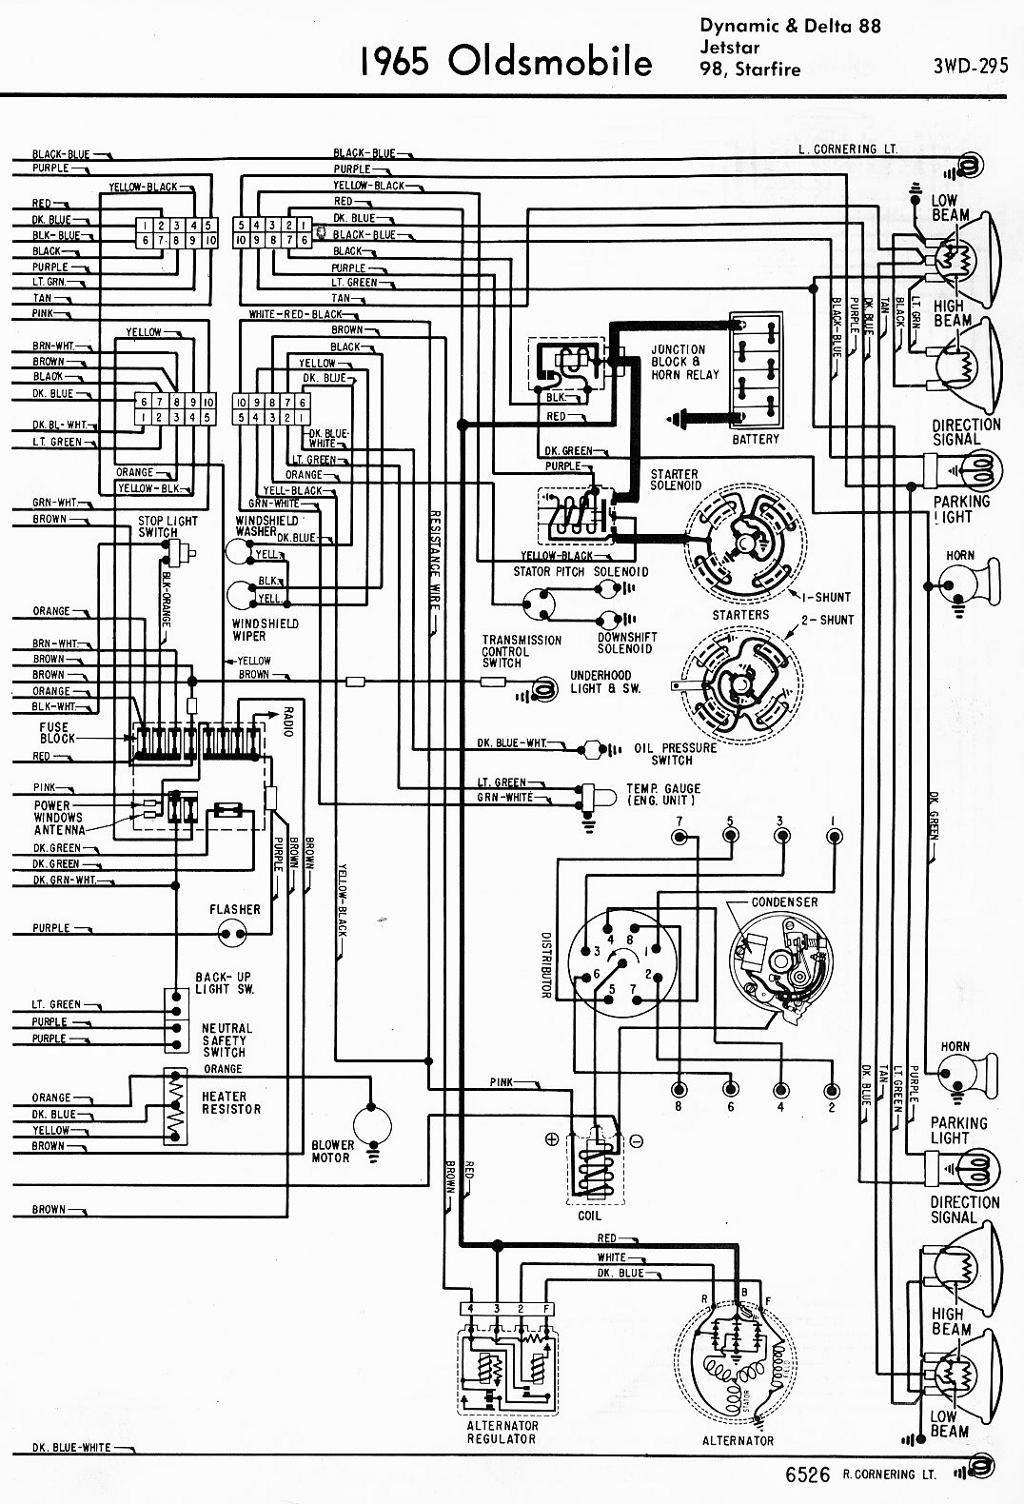 hight resolution of 1998 oldsmobile 88 wiring diagram wiring diagram for professional u2022 1998 buick park avenue wiring diagram car radio wiring diagram 1998 oldsmobile